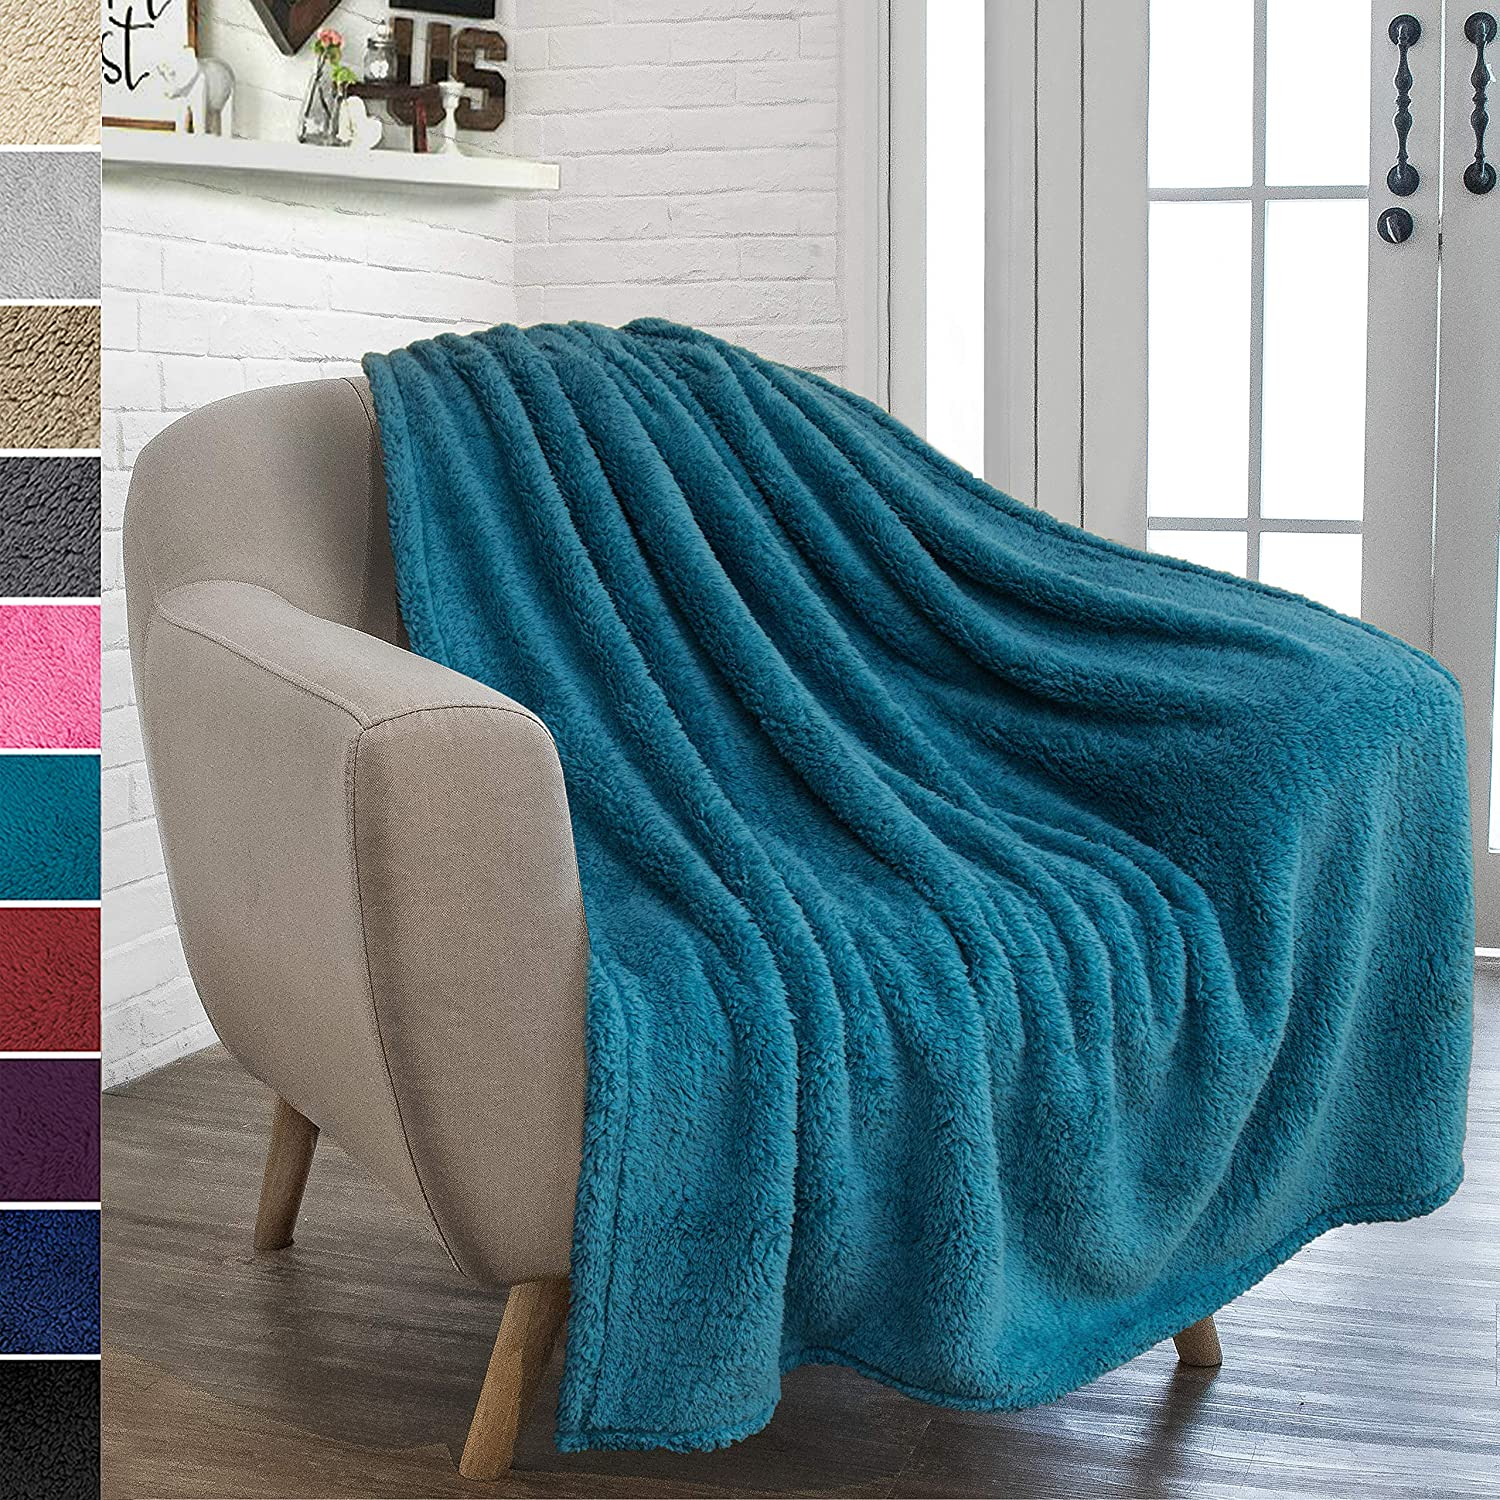 Solid Blue Turquoise Blanket